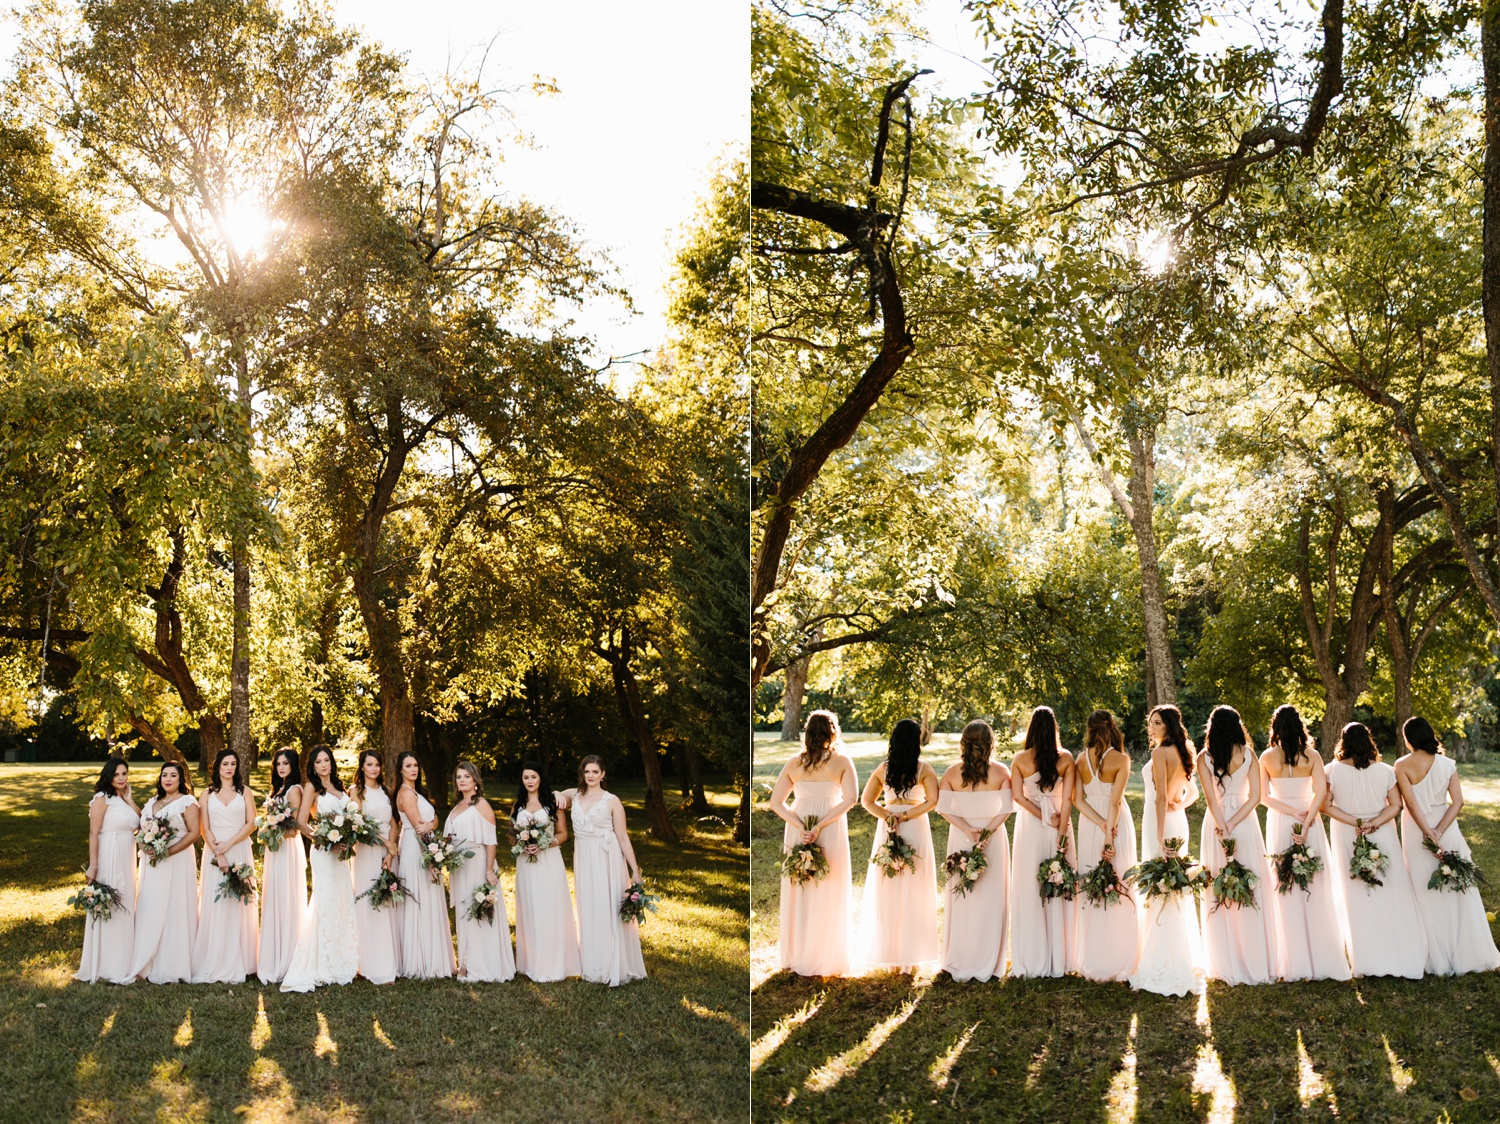 Erica + Henry | a bohemian inspired wedding at Chandlers Gardens in Salina, TX by North Texas Wedding Photographer Rachel Meagan Photography 052